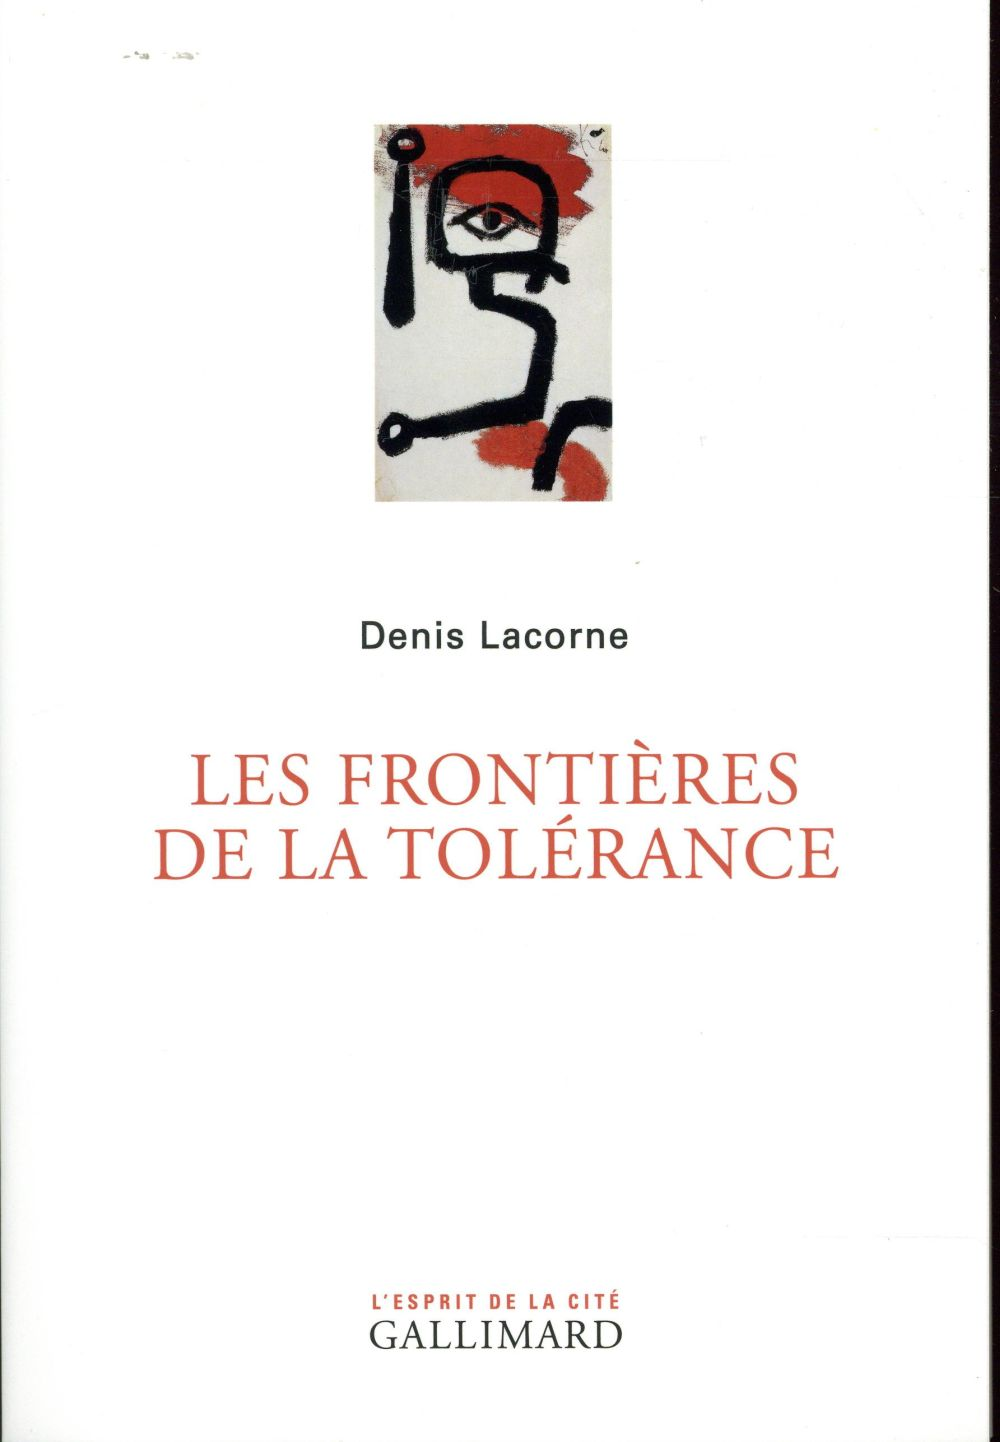 LES FRONTIERES DE LA TOLERANCE